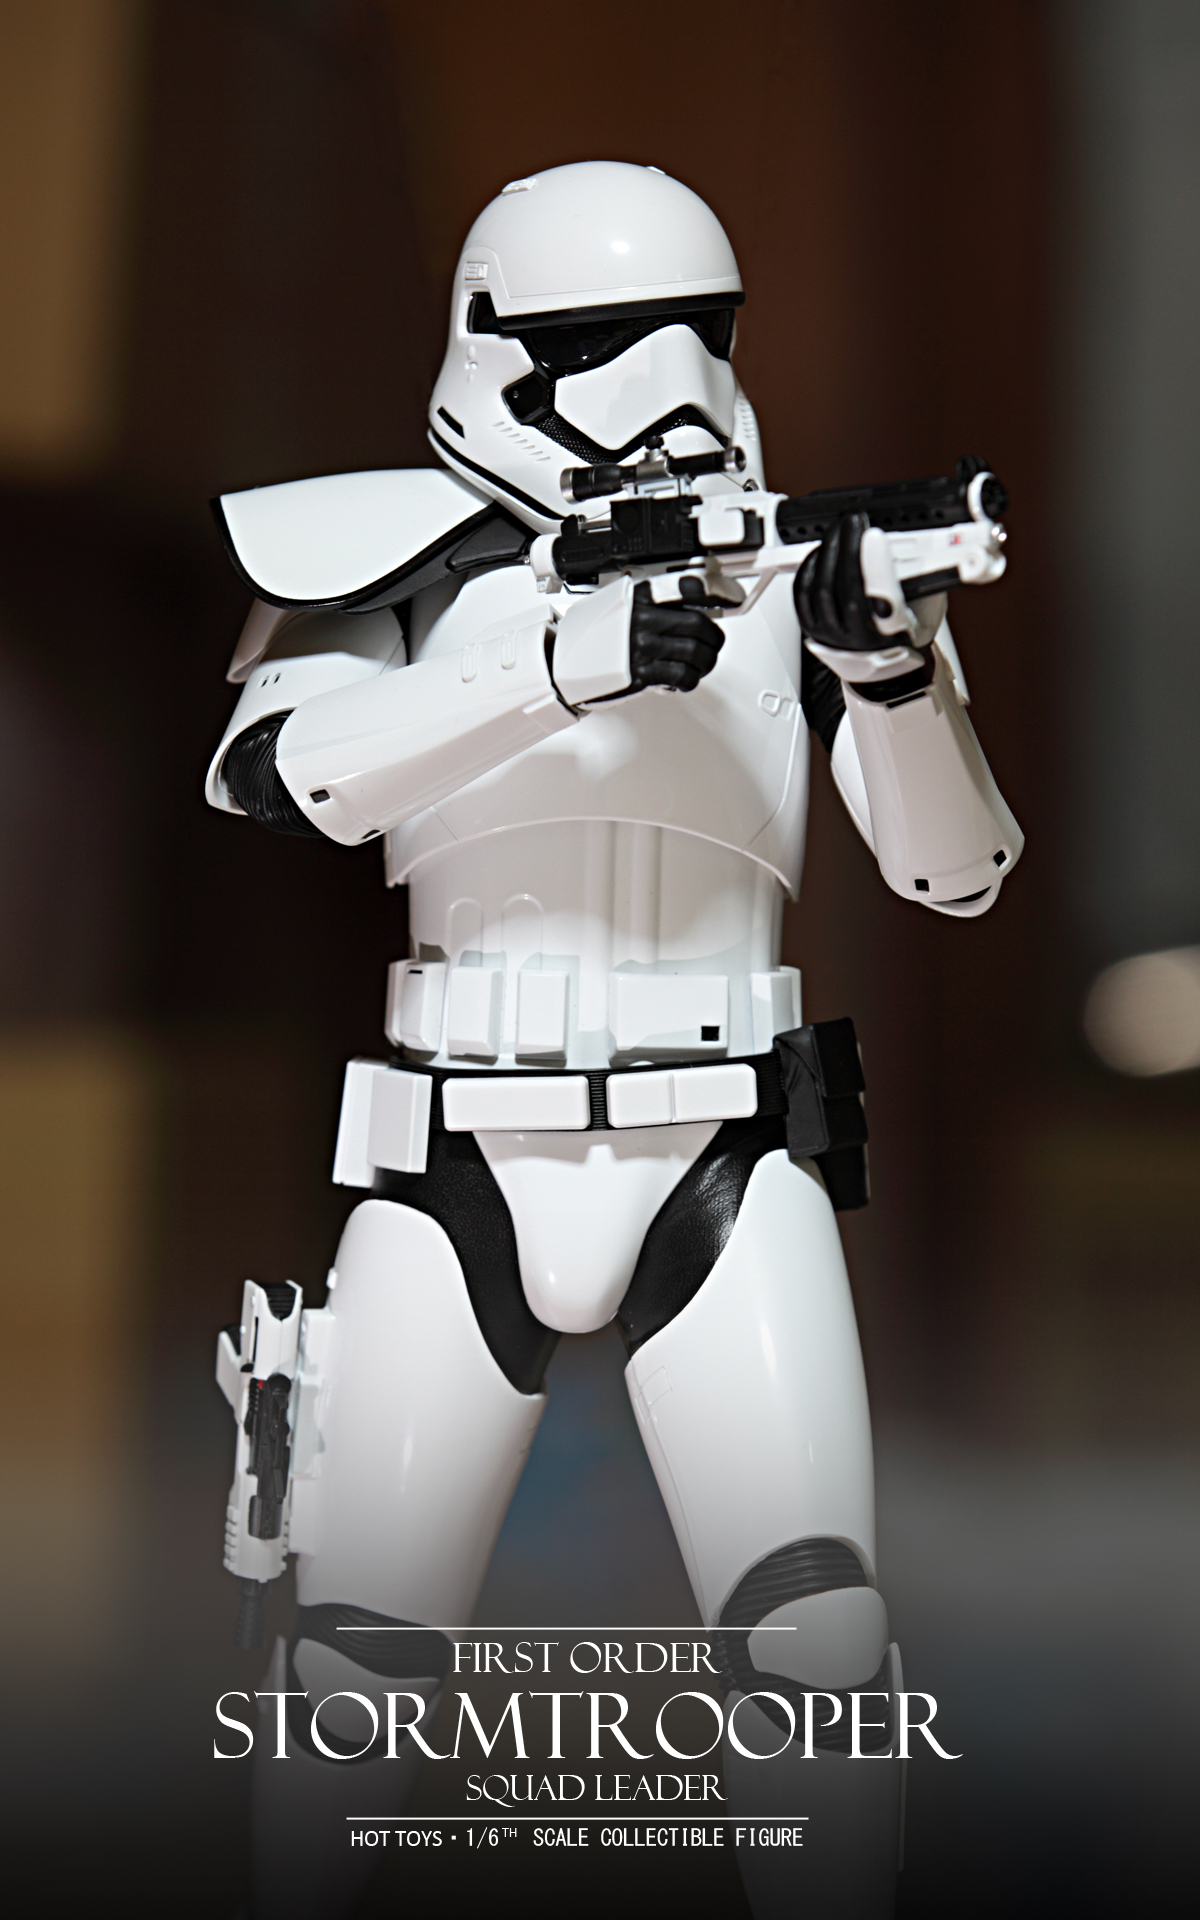 hottoys-star-wars-the-force-awakens-first-order-stormtrooper-Squad-Leader-picture01hottoys-star-wars-the-force-awakens-first-order-stormtrooper-Squad-Leader-picture02